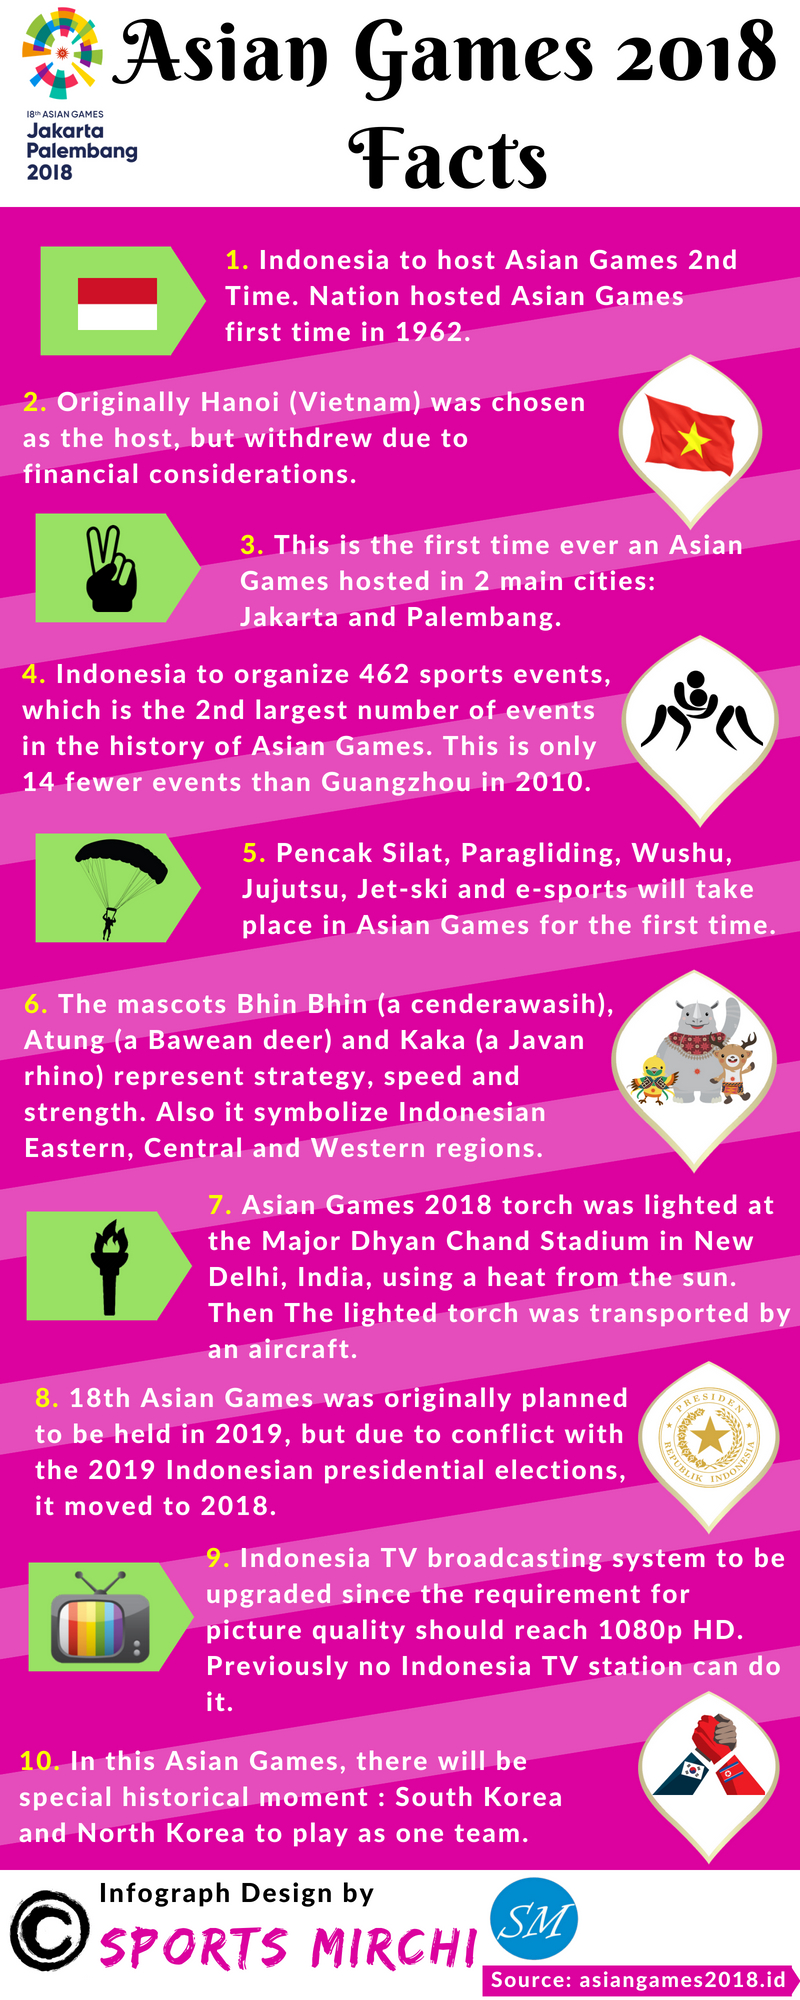 Asian Games 2018 Interesting Facts infograph by Sports Mirchi